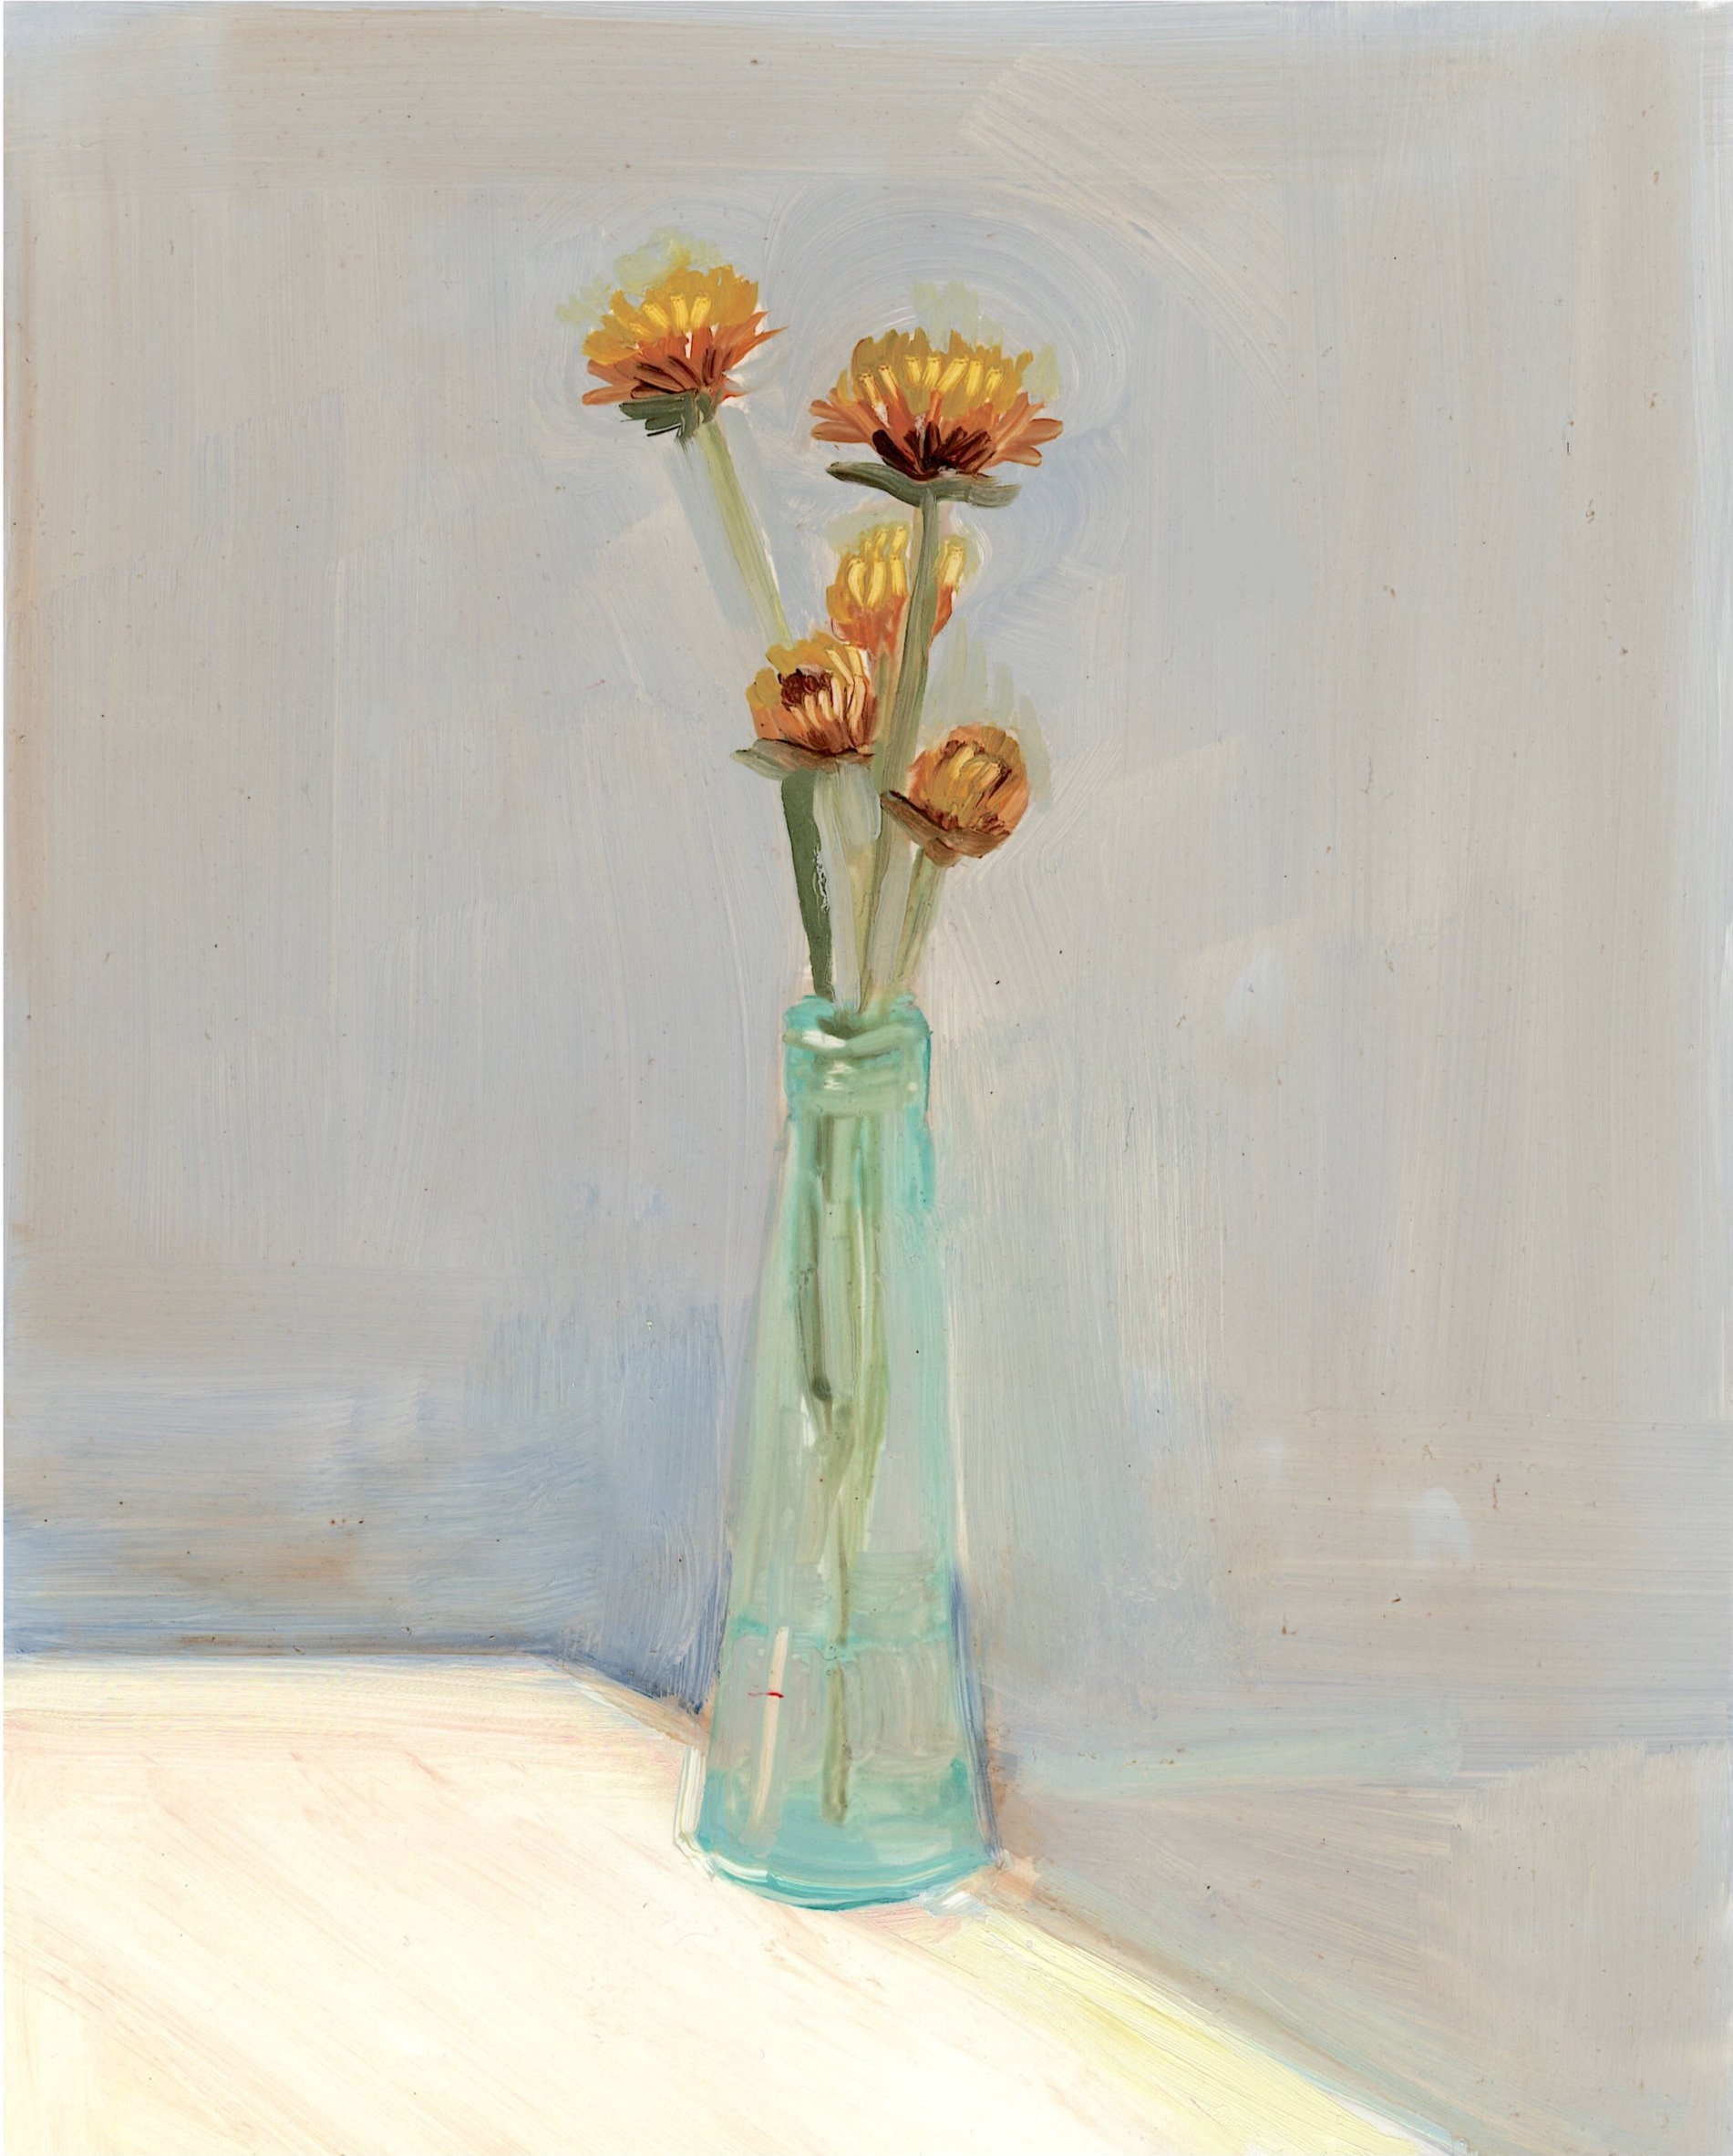 Straw Flower in Teal Vase